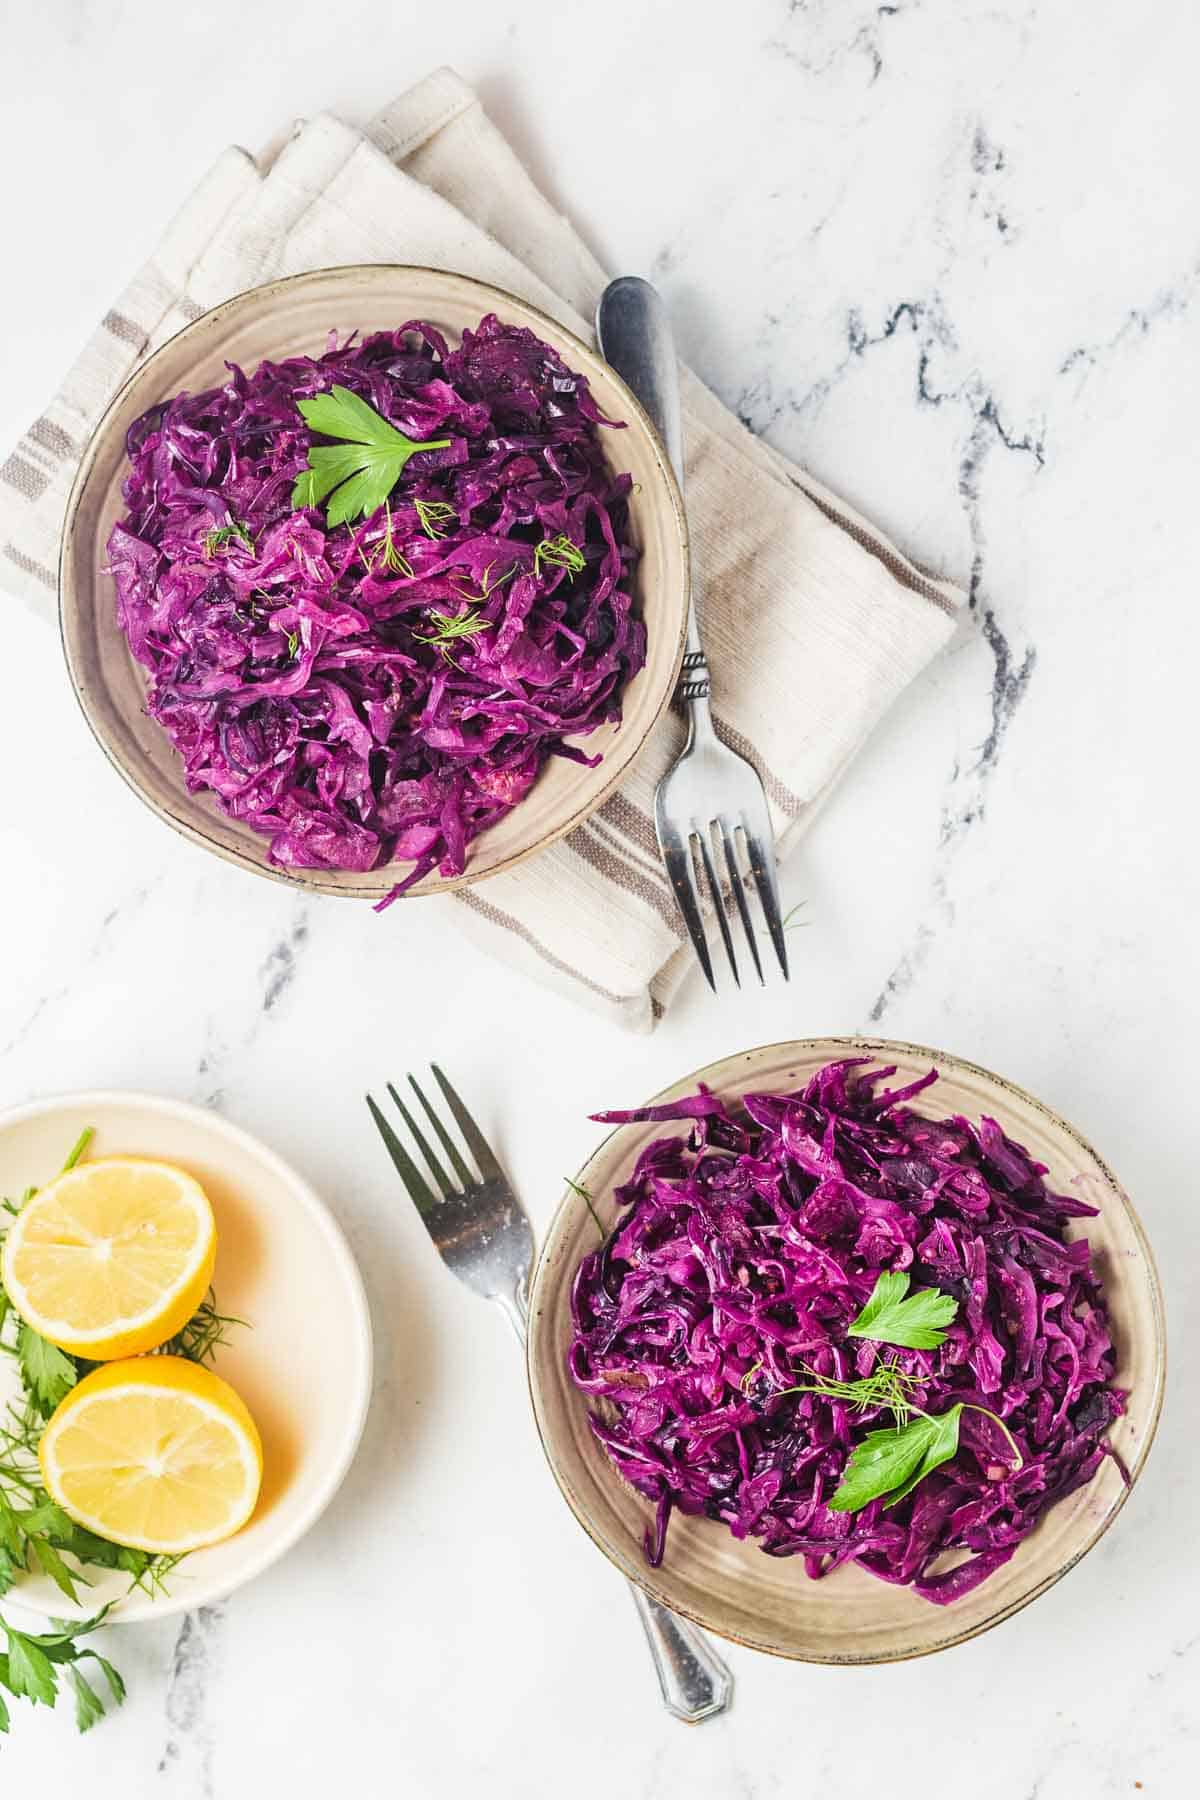 Birds eye view of two servings of instant pot cabbage in brown coloured bowls and garnished with parsley with a halved lemon on the side.